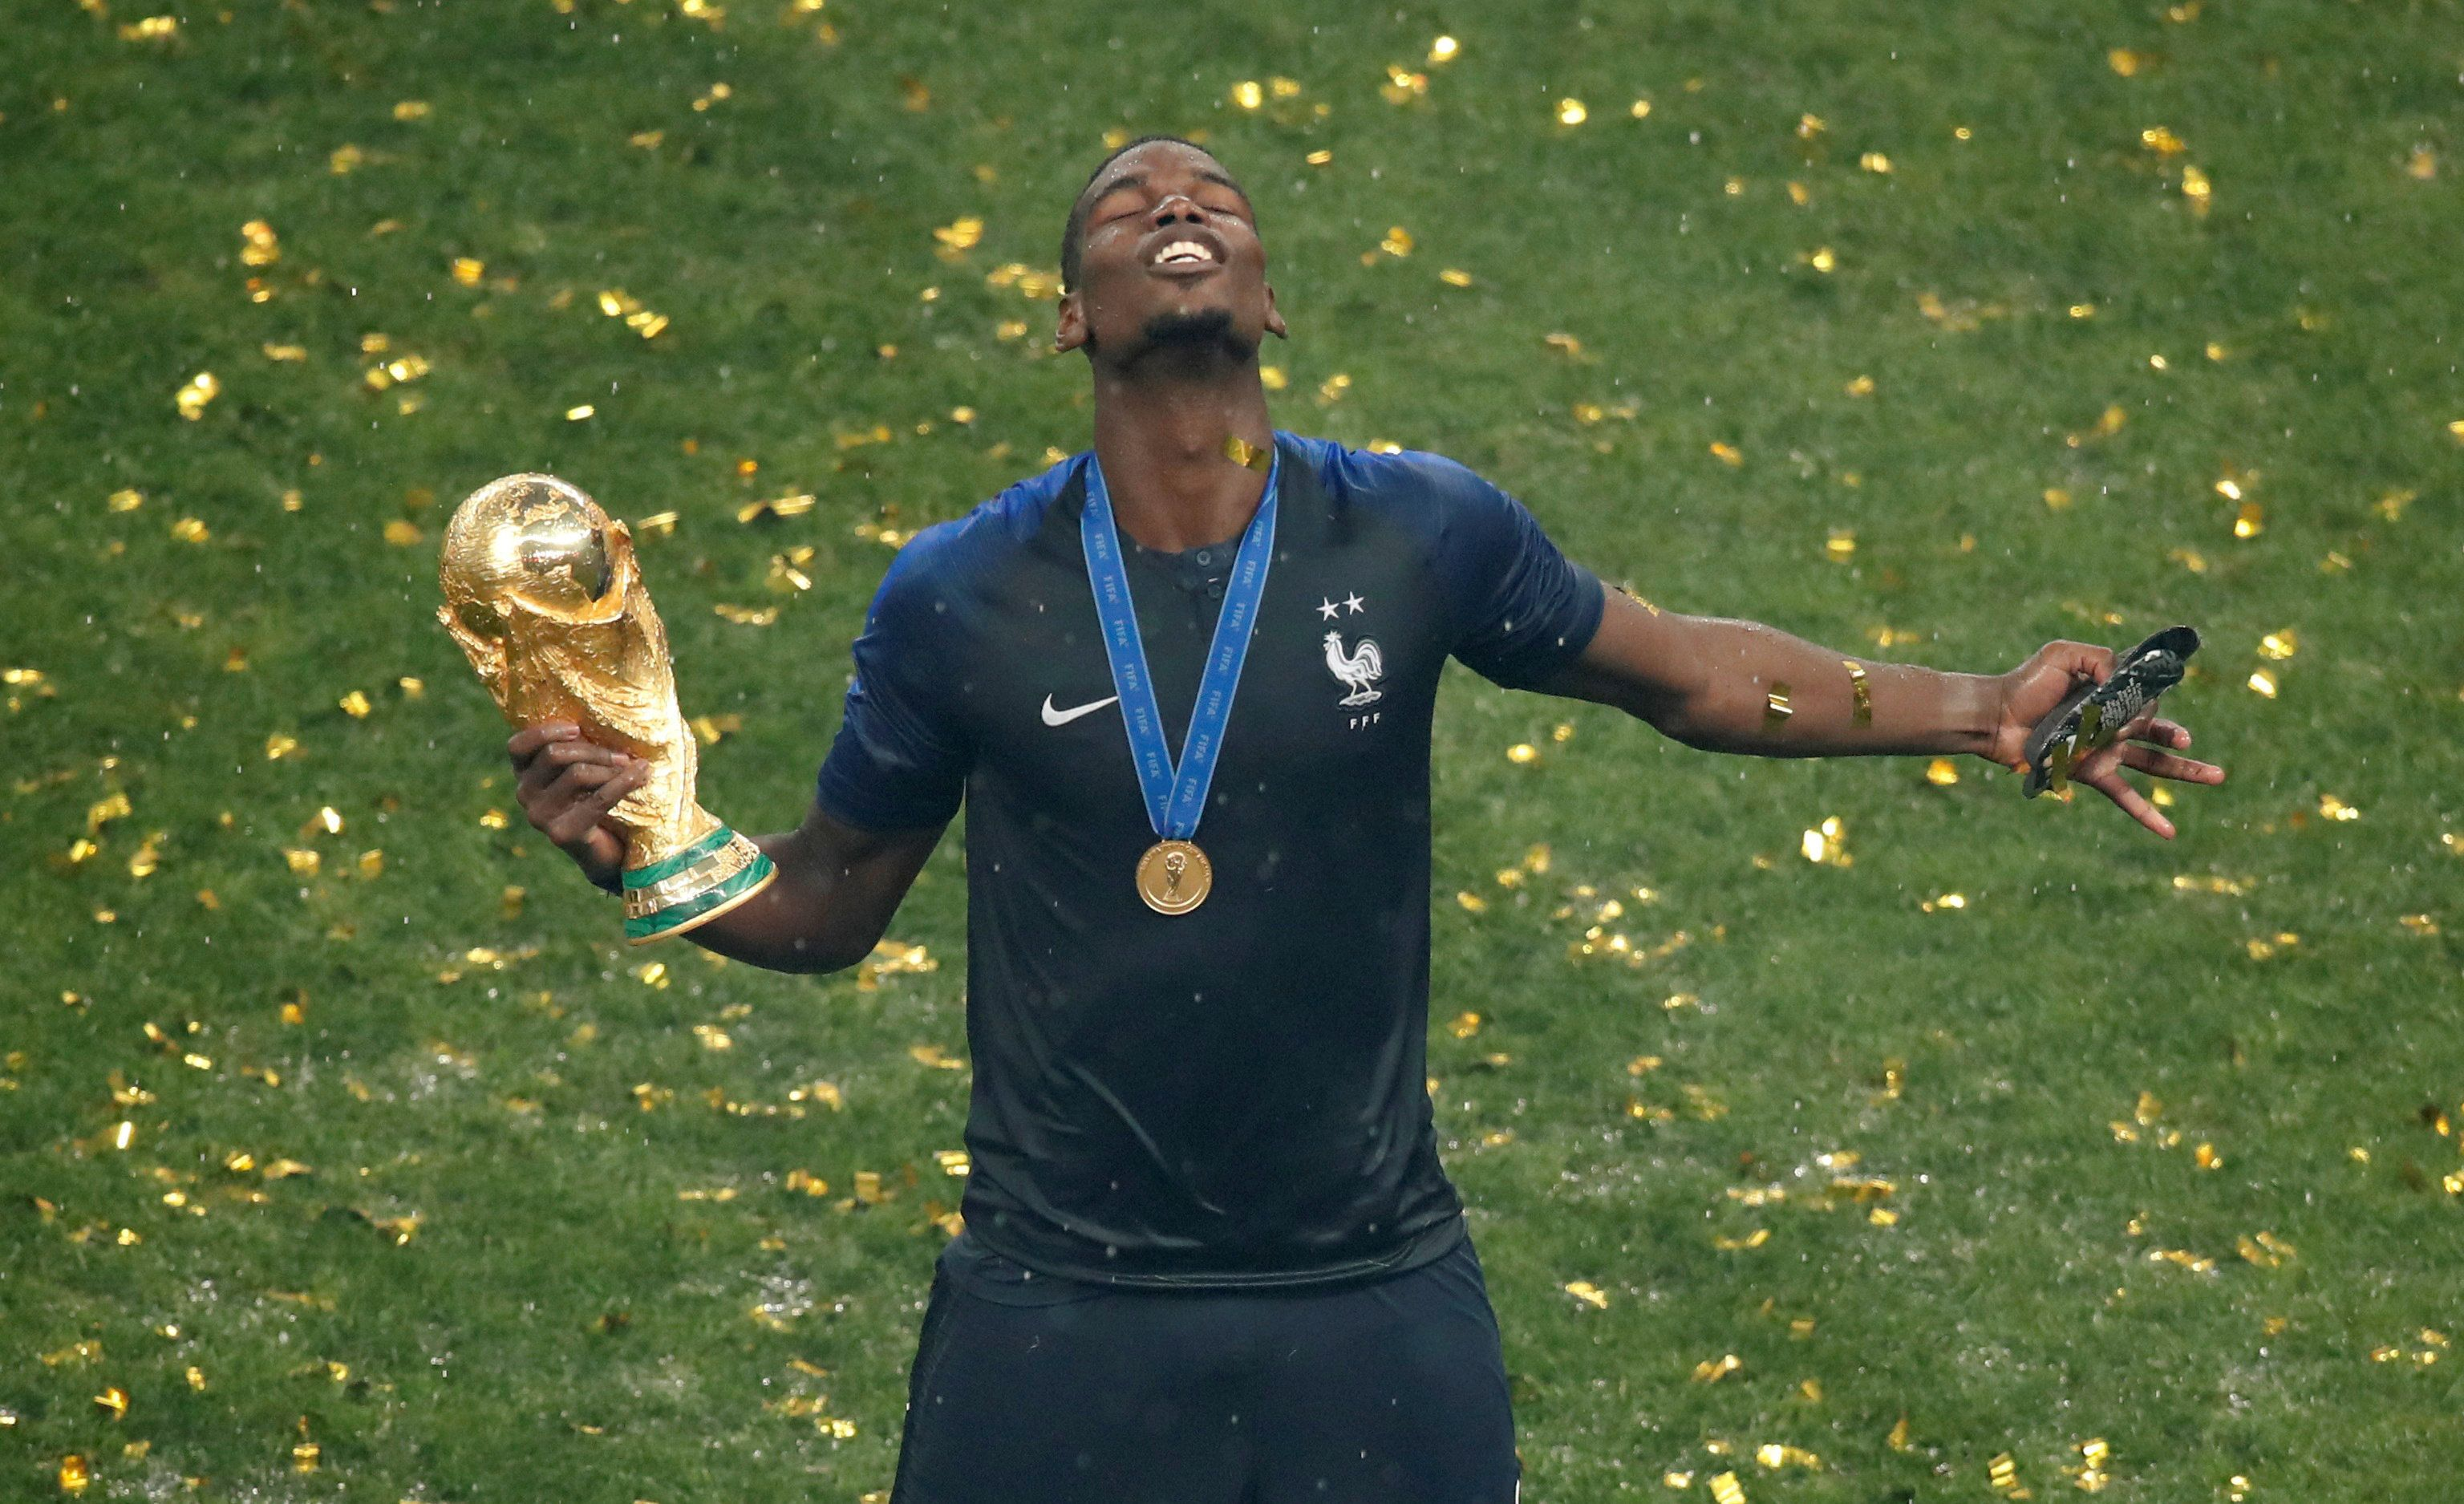 Soccer Football - World Cup - Final - France v Croatia - Luzhniki Stadium, Moscow, Russia - July 15, 2018  France's Paul Pogba holds the trophy as they celebrate winning the World Cup  REUTERS/Christian Hartmann